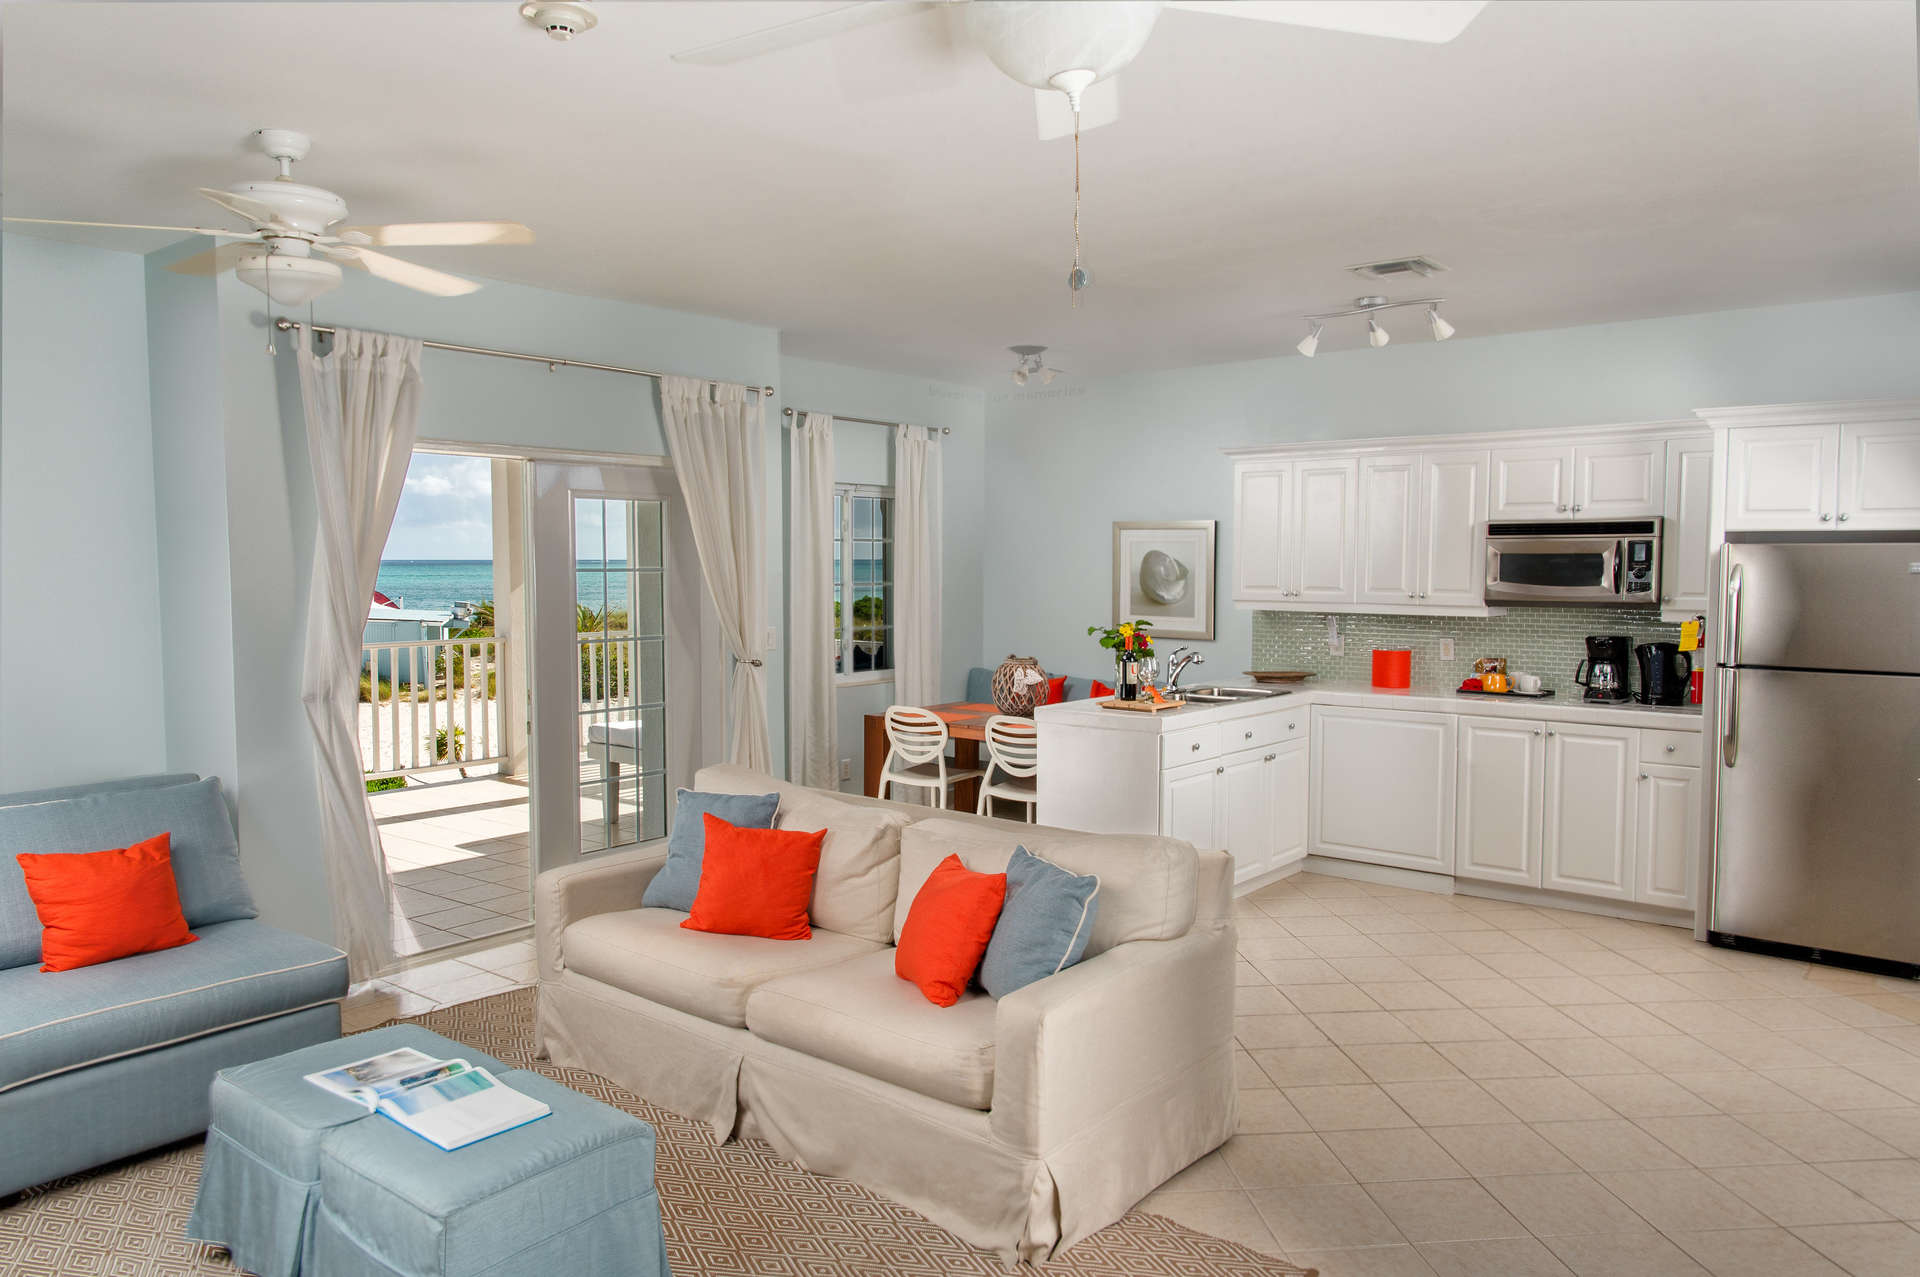 Luxury villa rentals caribbean - Turks and caicos - Providenciales - Grace bay - 1 Bedroom Oceanfront | Beach House All-inclusive - Image 1/7